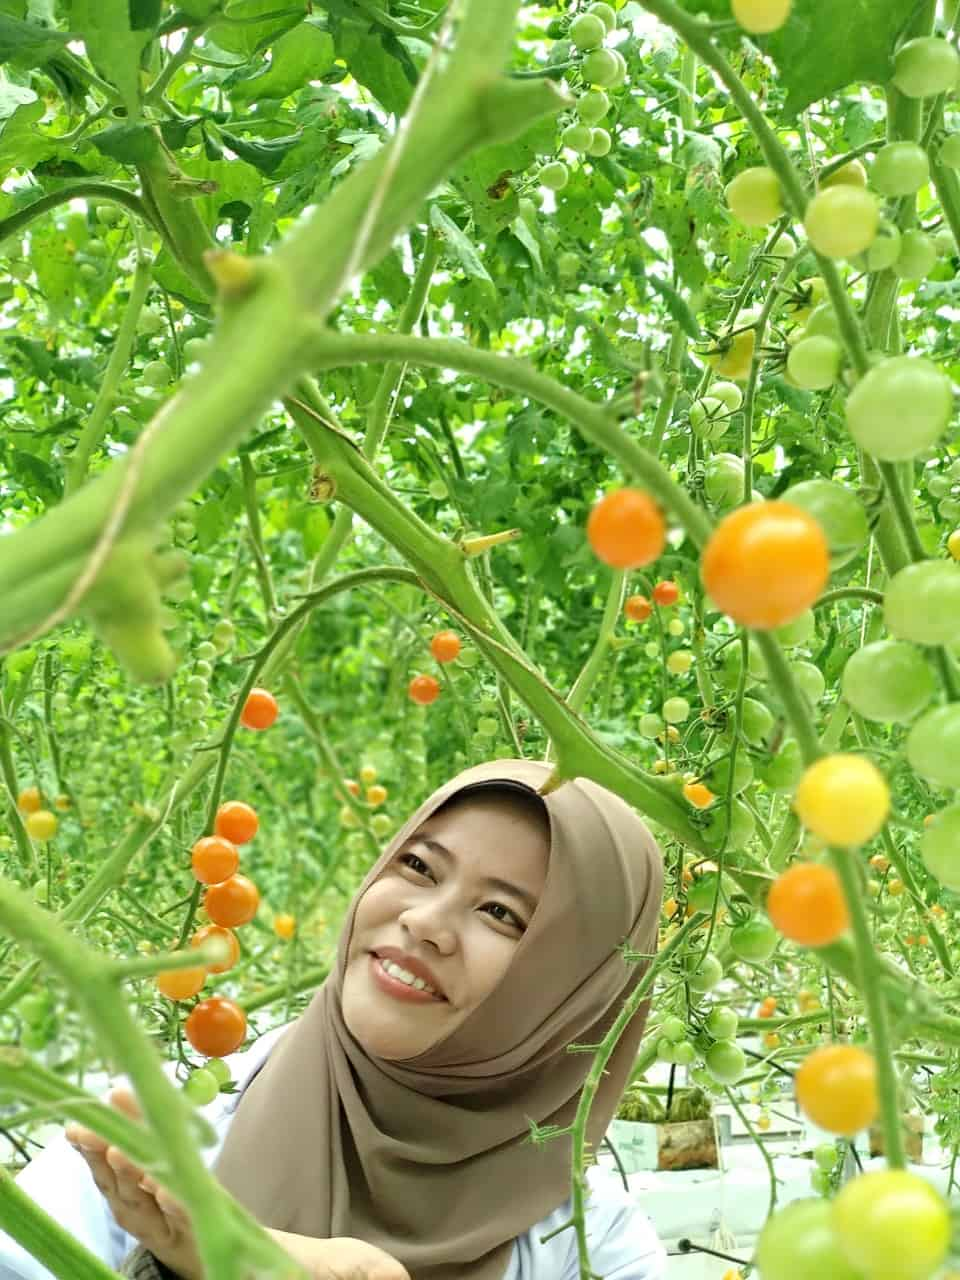 a woman happily picking ripe tomatoes